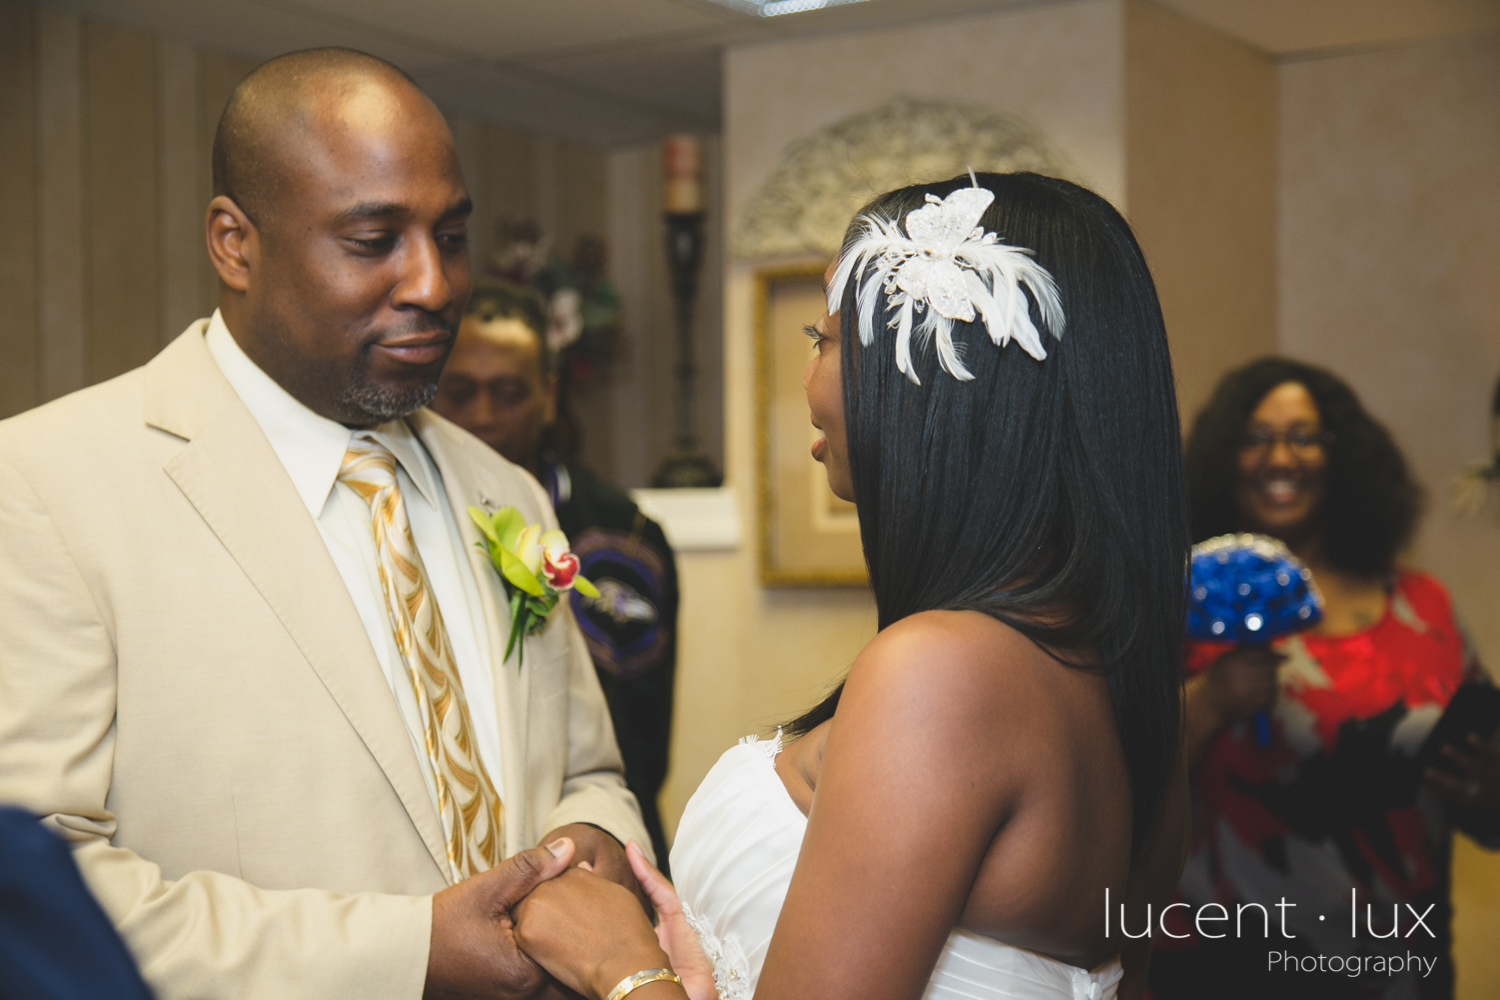 Harford_County_Courthouse_Bel_Air_Maryland_Wedding_Photographer_Maryland_Wedding_Photography-134.jpg